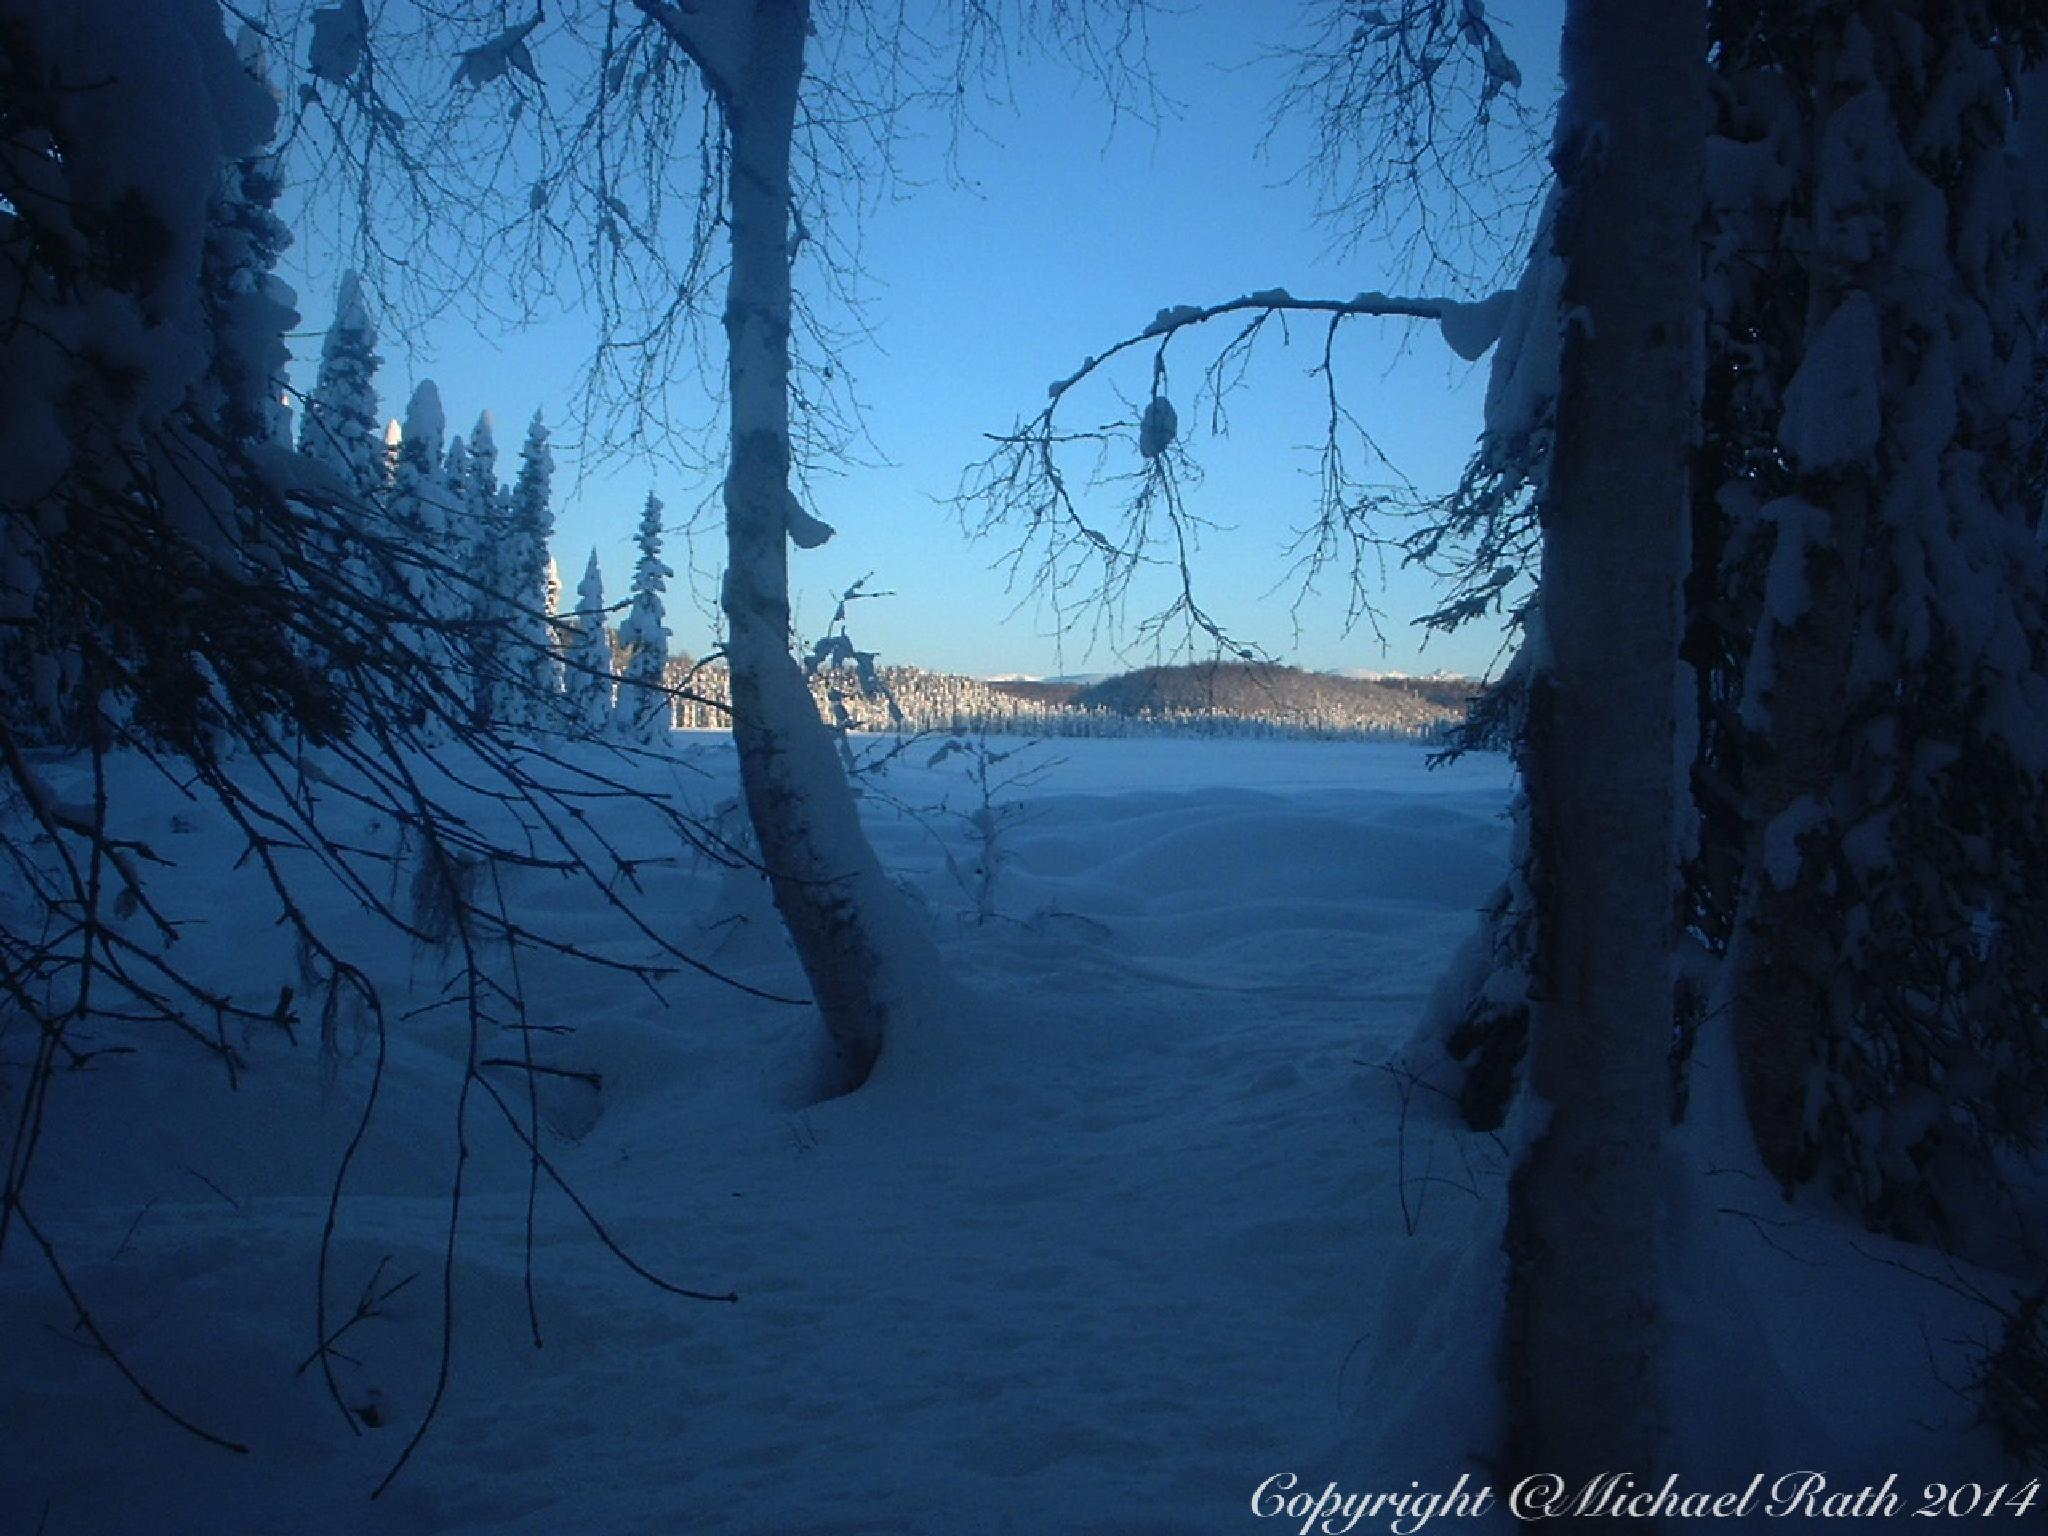 Alaska winter scene by Michael